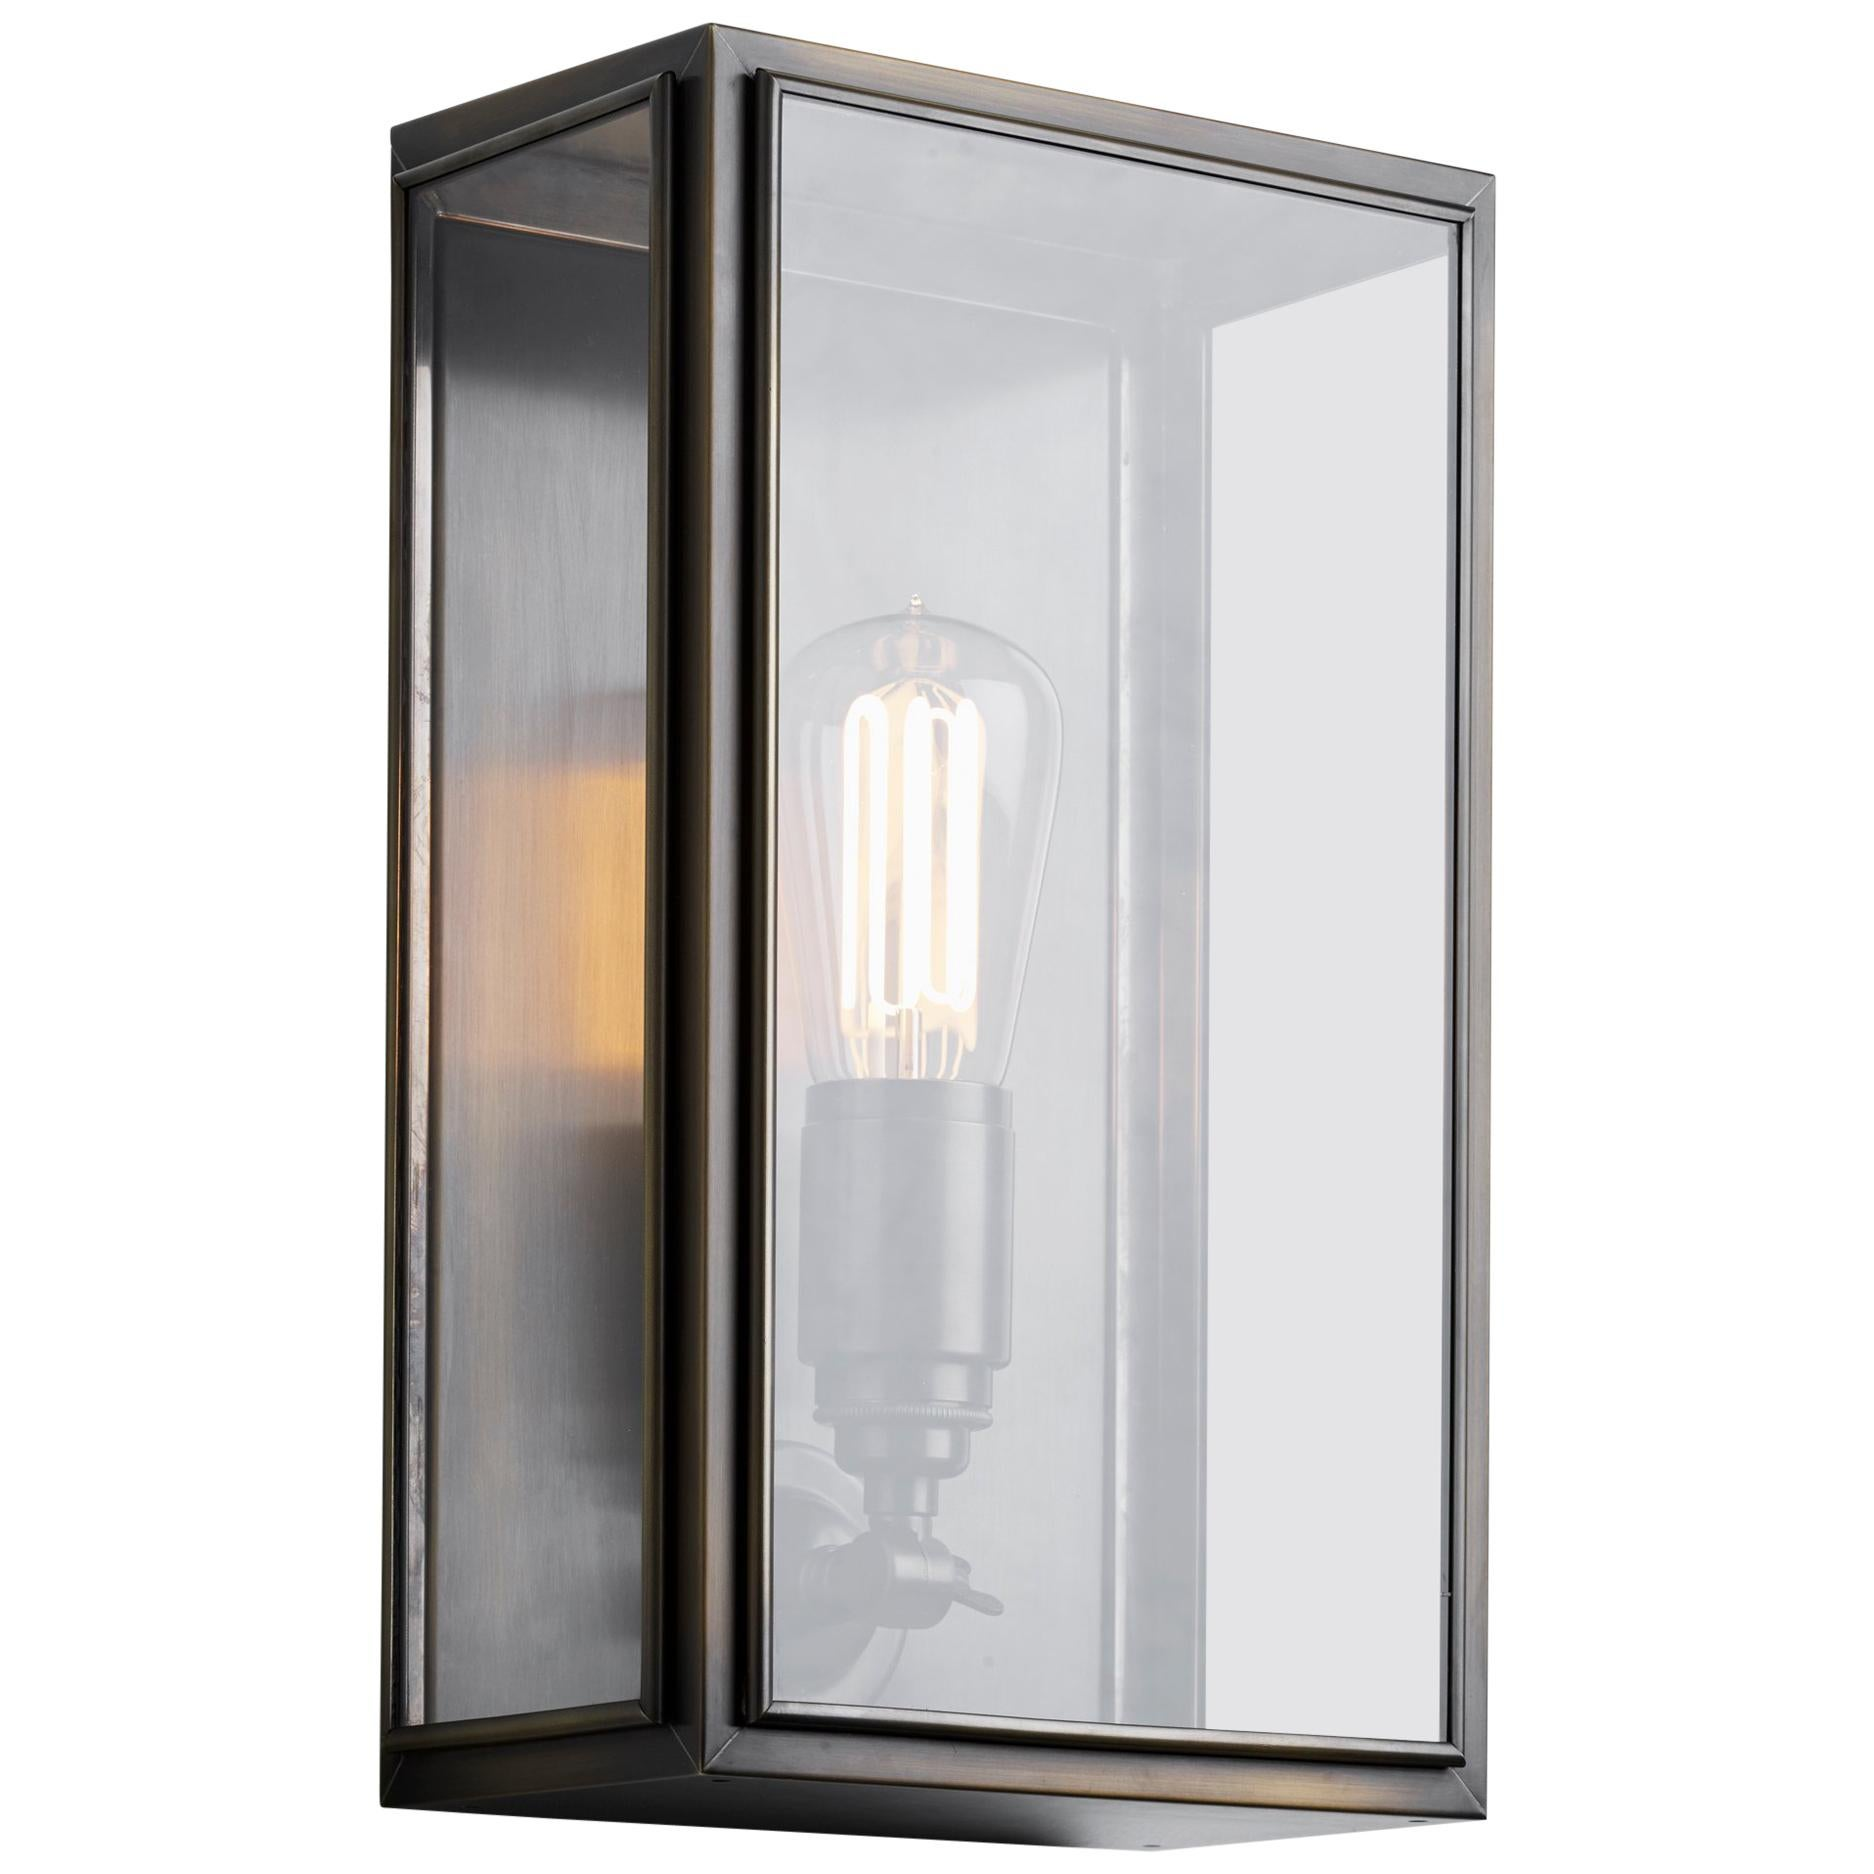 Tekna Essex-C Wall Light with Dark Bronze Finish and Clear Glass